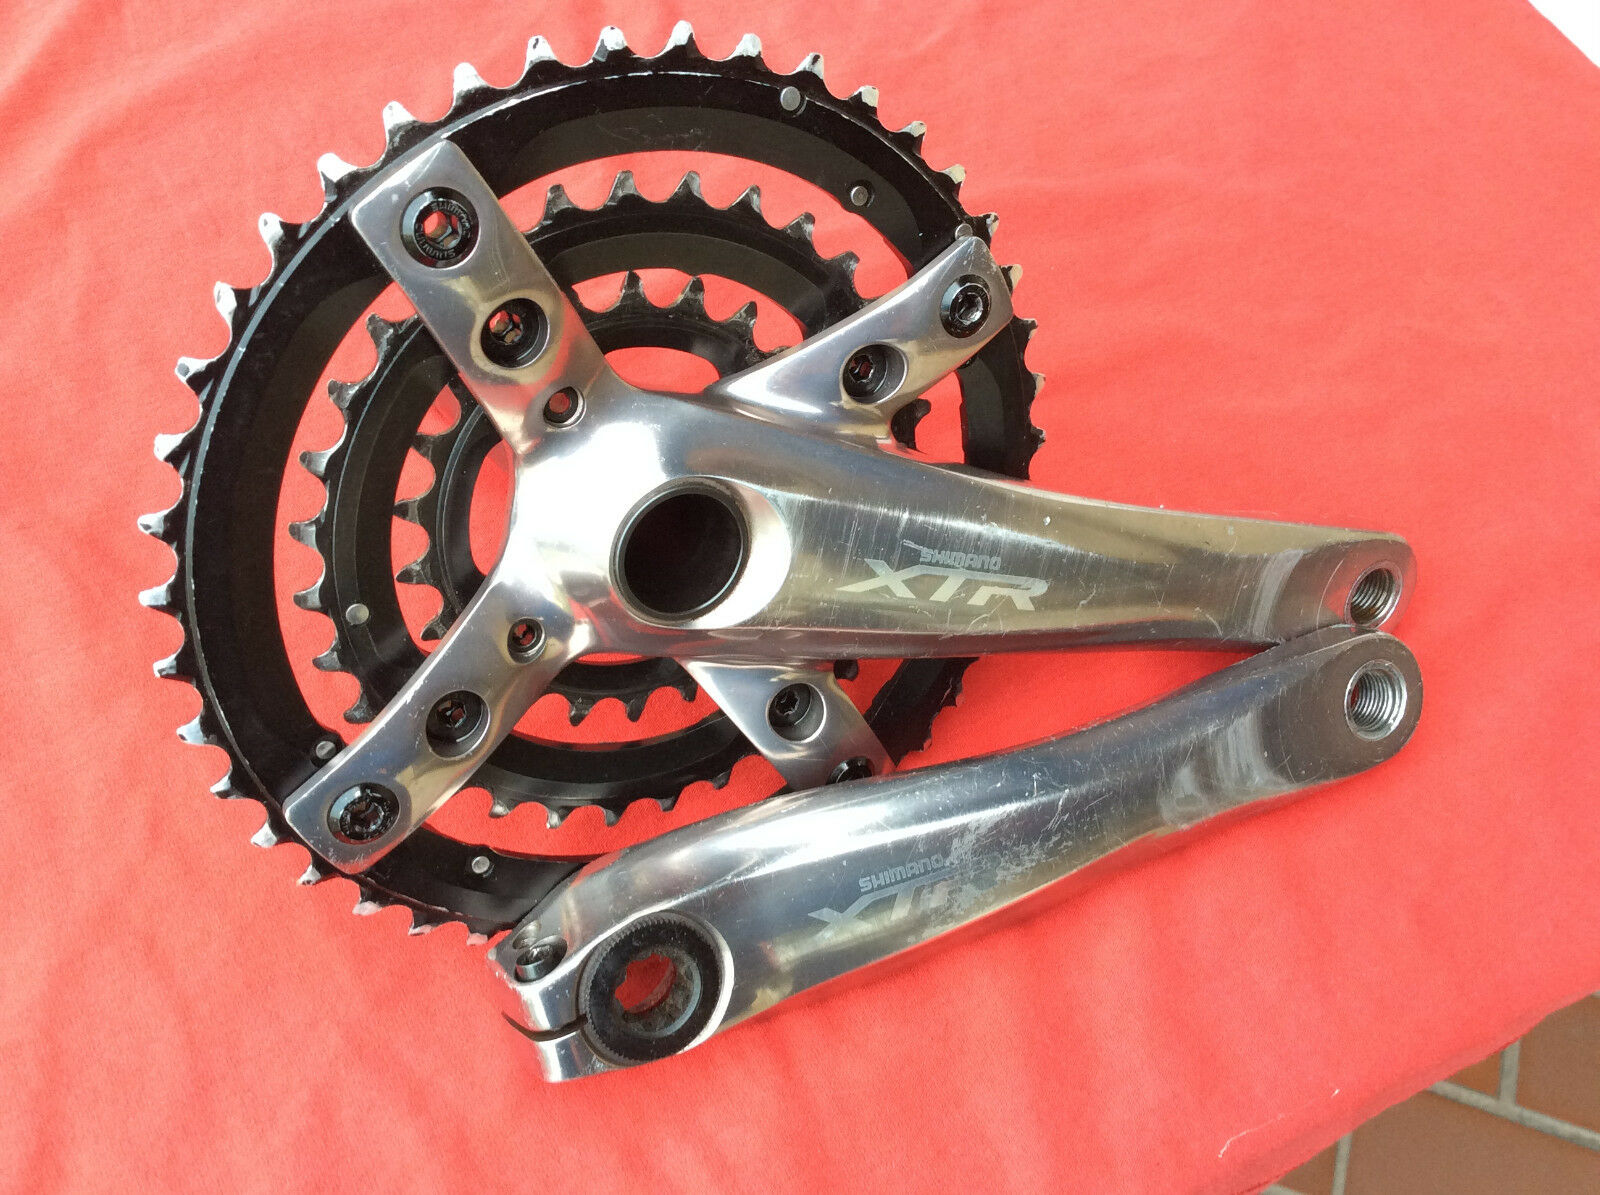 Shimano XTR FC-M960 Crank Set 175mm IN IN IN GOOD CONDITION ac1627